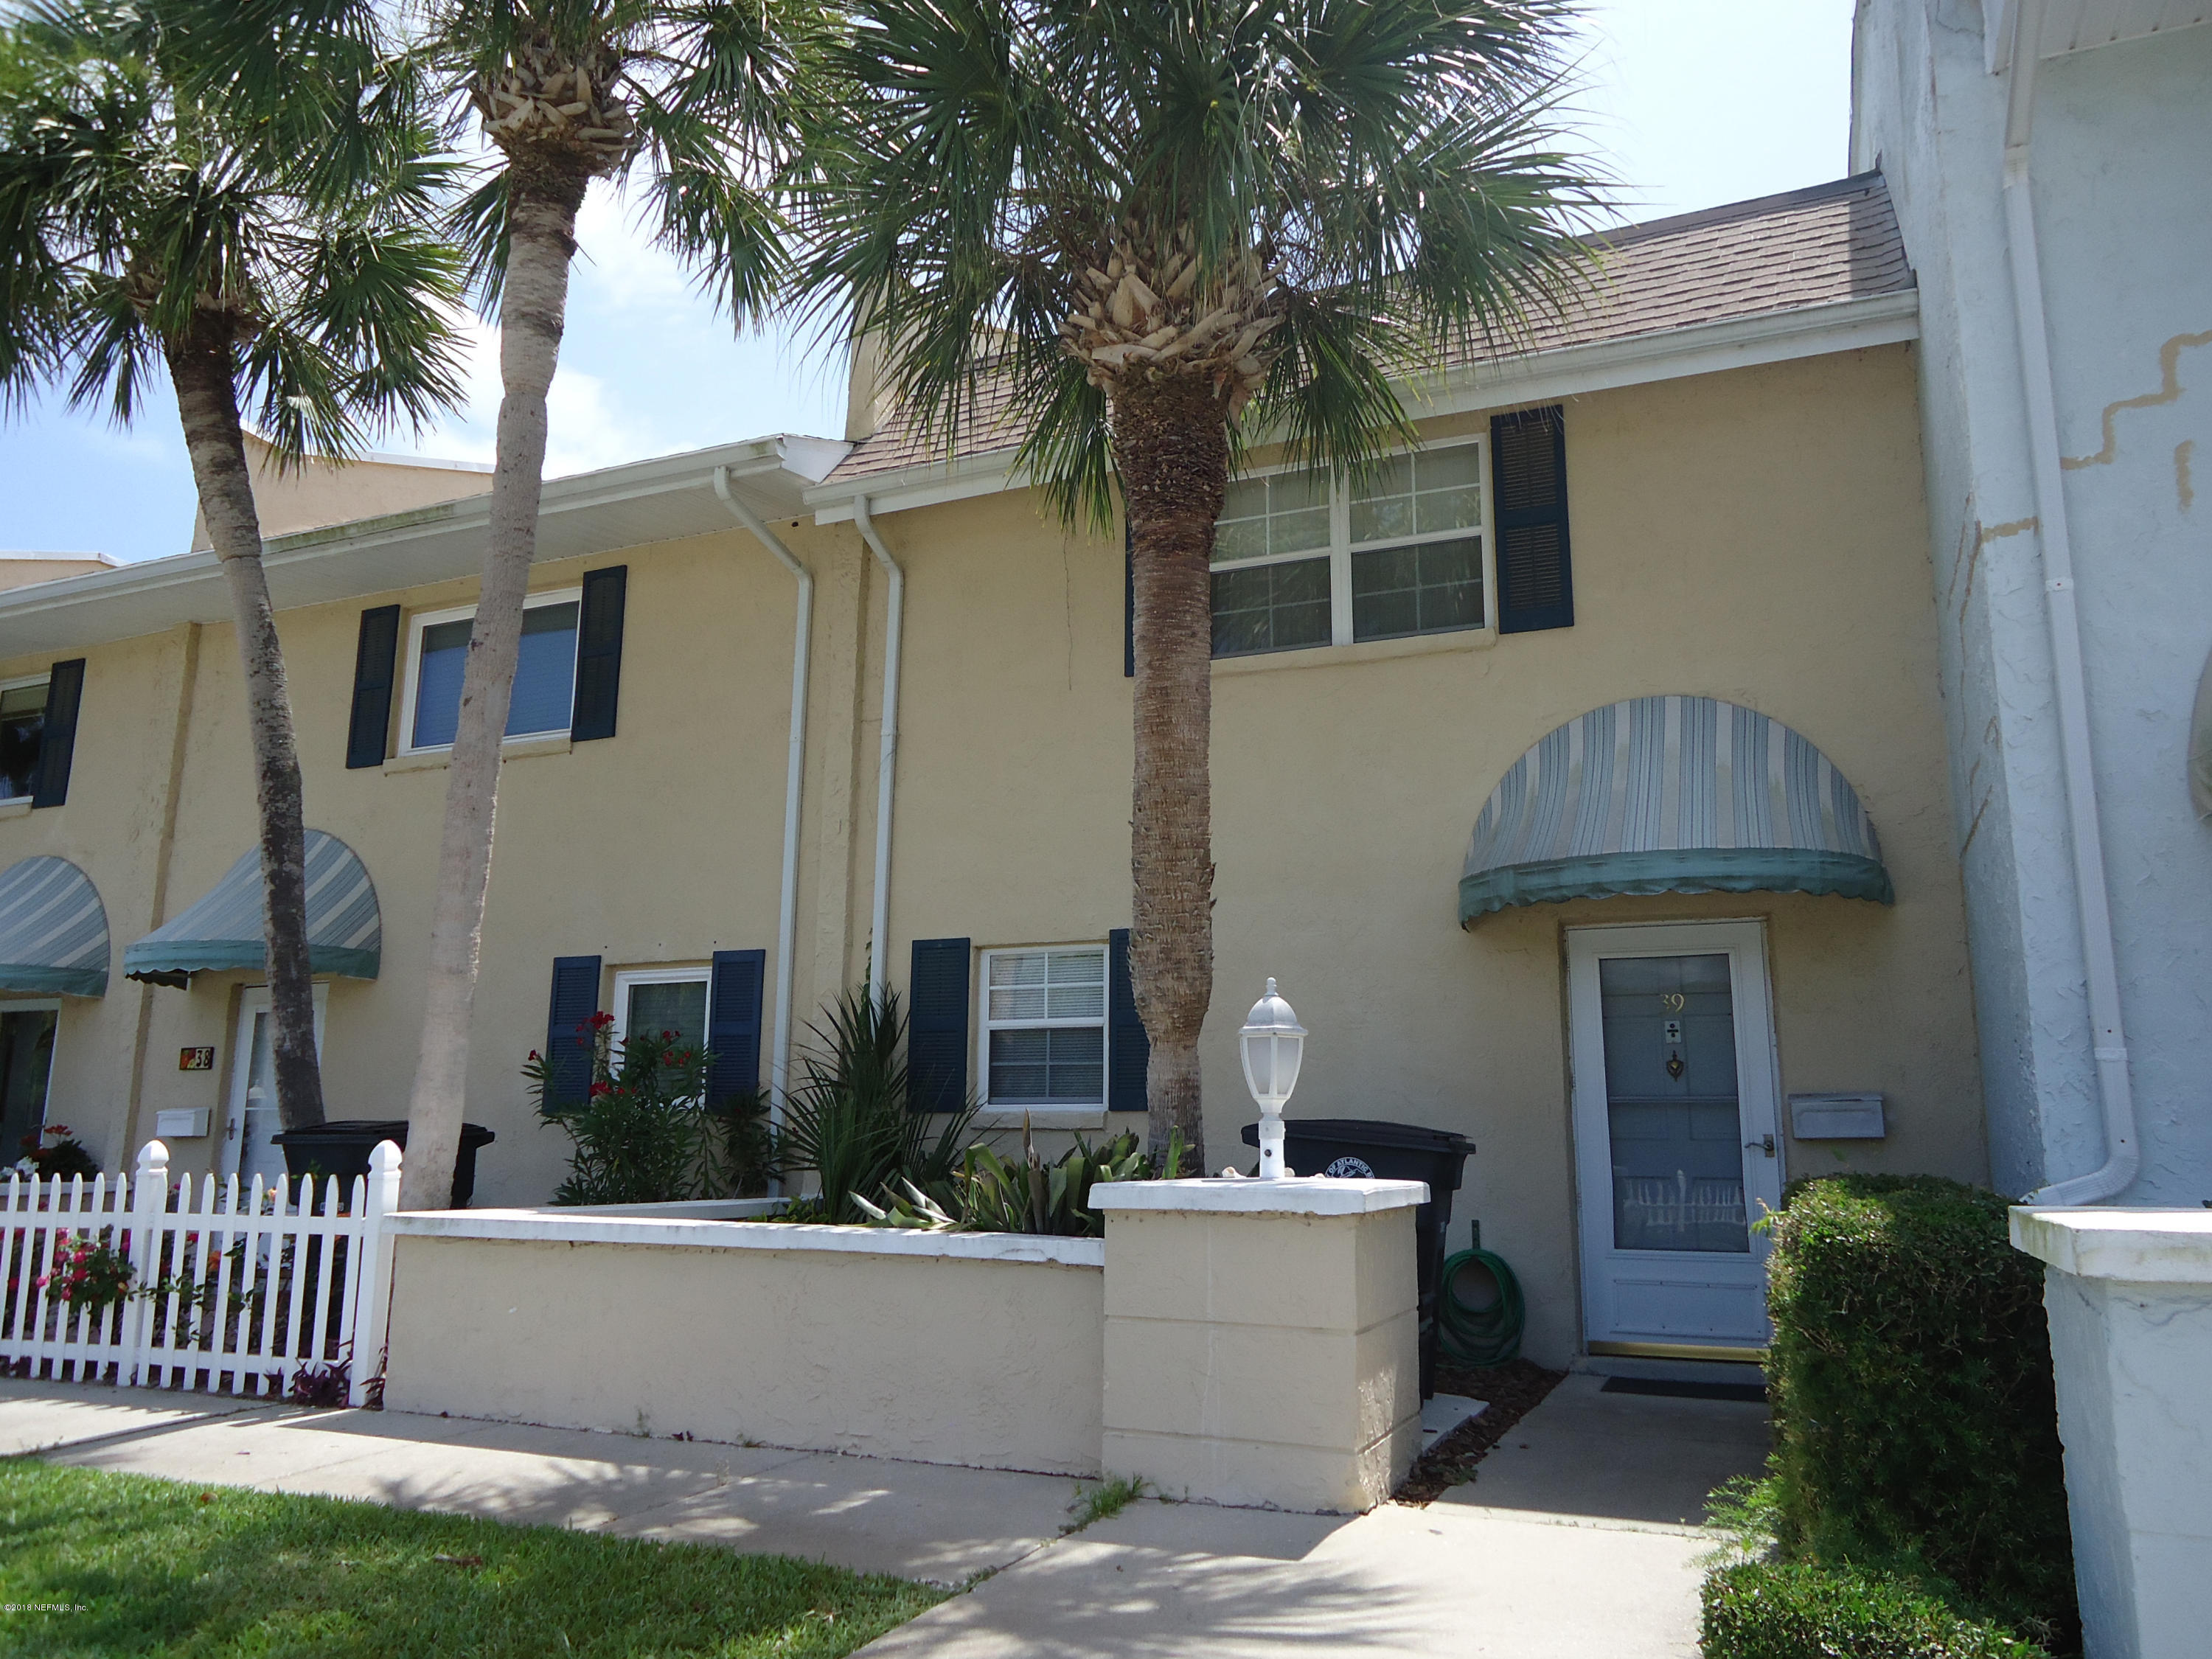 2233 SEMINOLE, ATLANTIC BEACH, FLORIDA 32233, 2 Bedrooms Bedrooms, ,2 BathroomsBathrooms,Rental,For Rent,SEMINOLE,992176